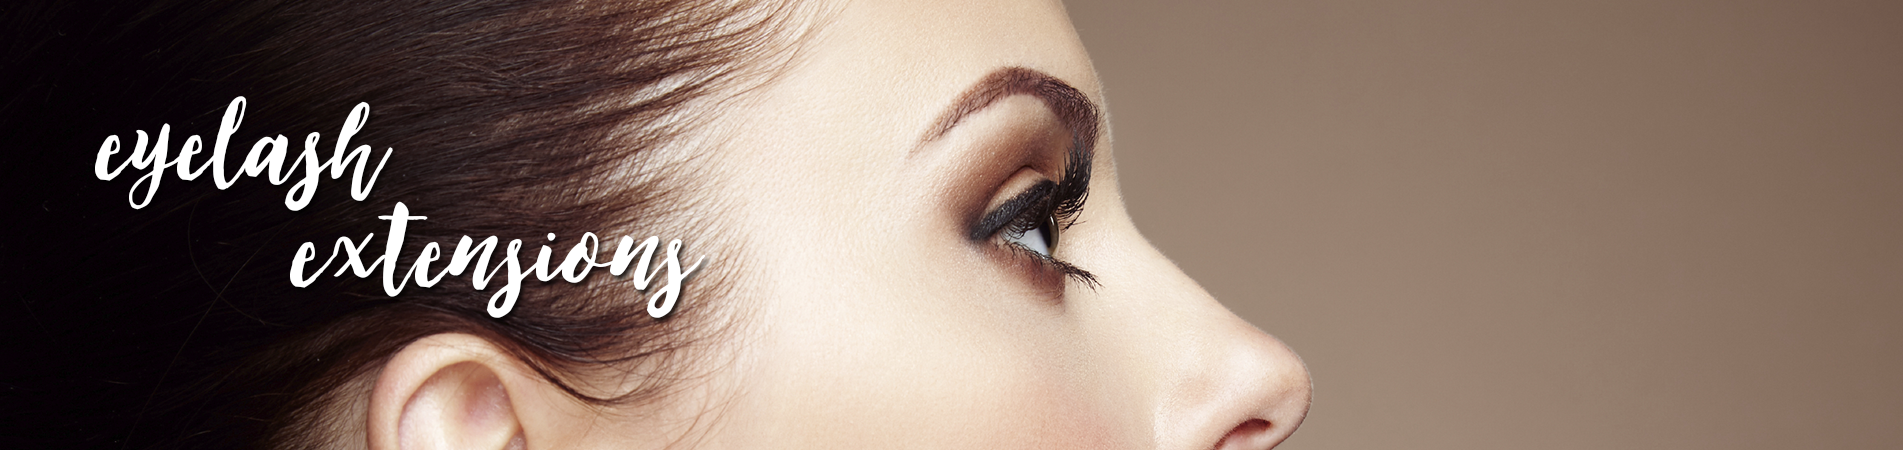 Dr Newman offers affordable natural looking Eyelash Extensions